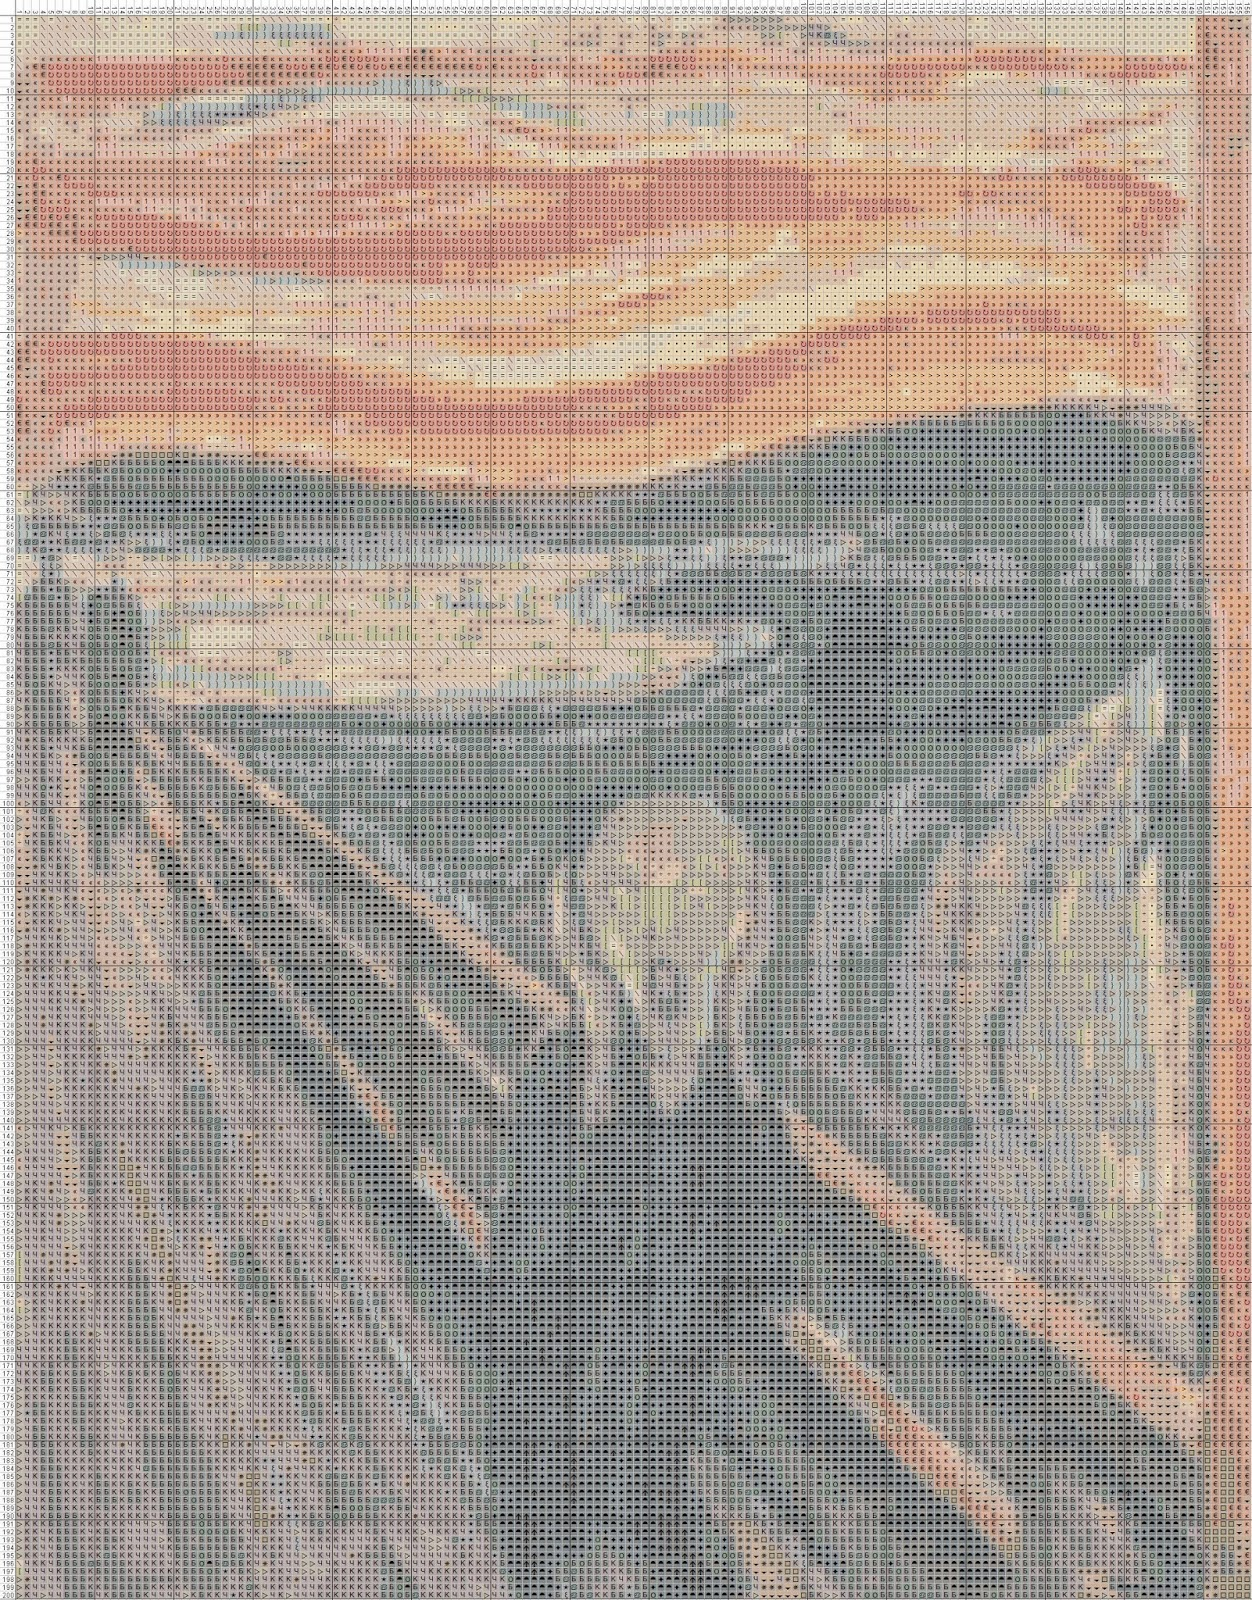 Gambar Pola Kristik  Lukisan The Scream Karya Edward Munch (Pelukis Norwegia)